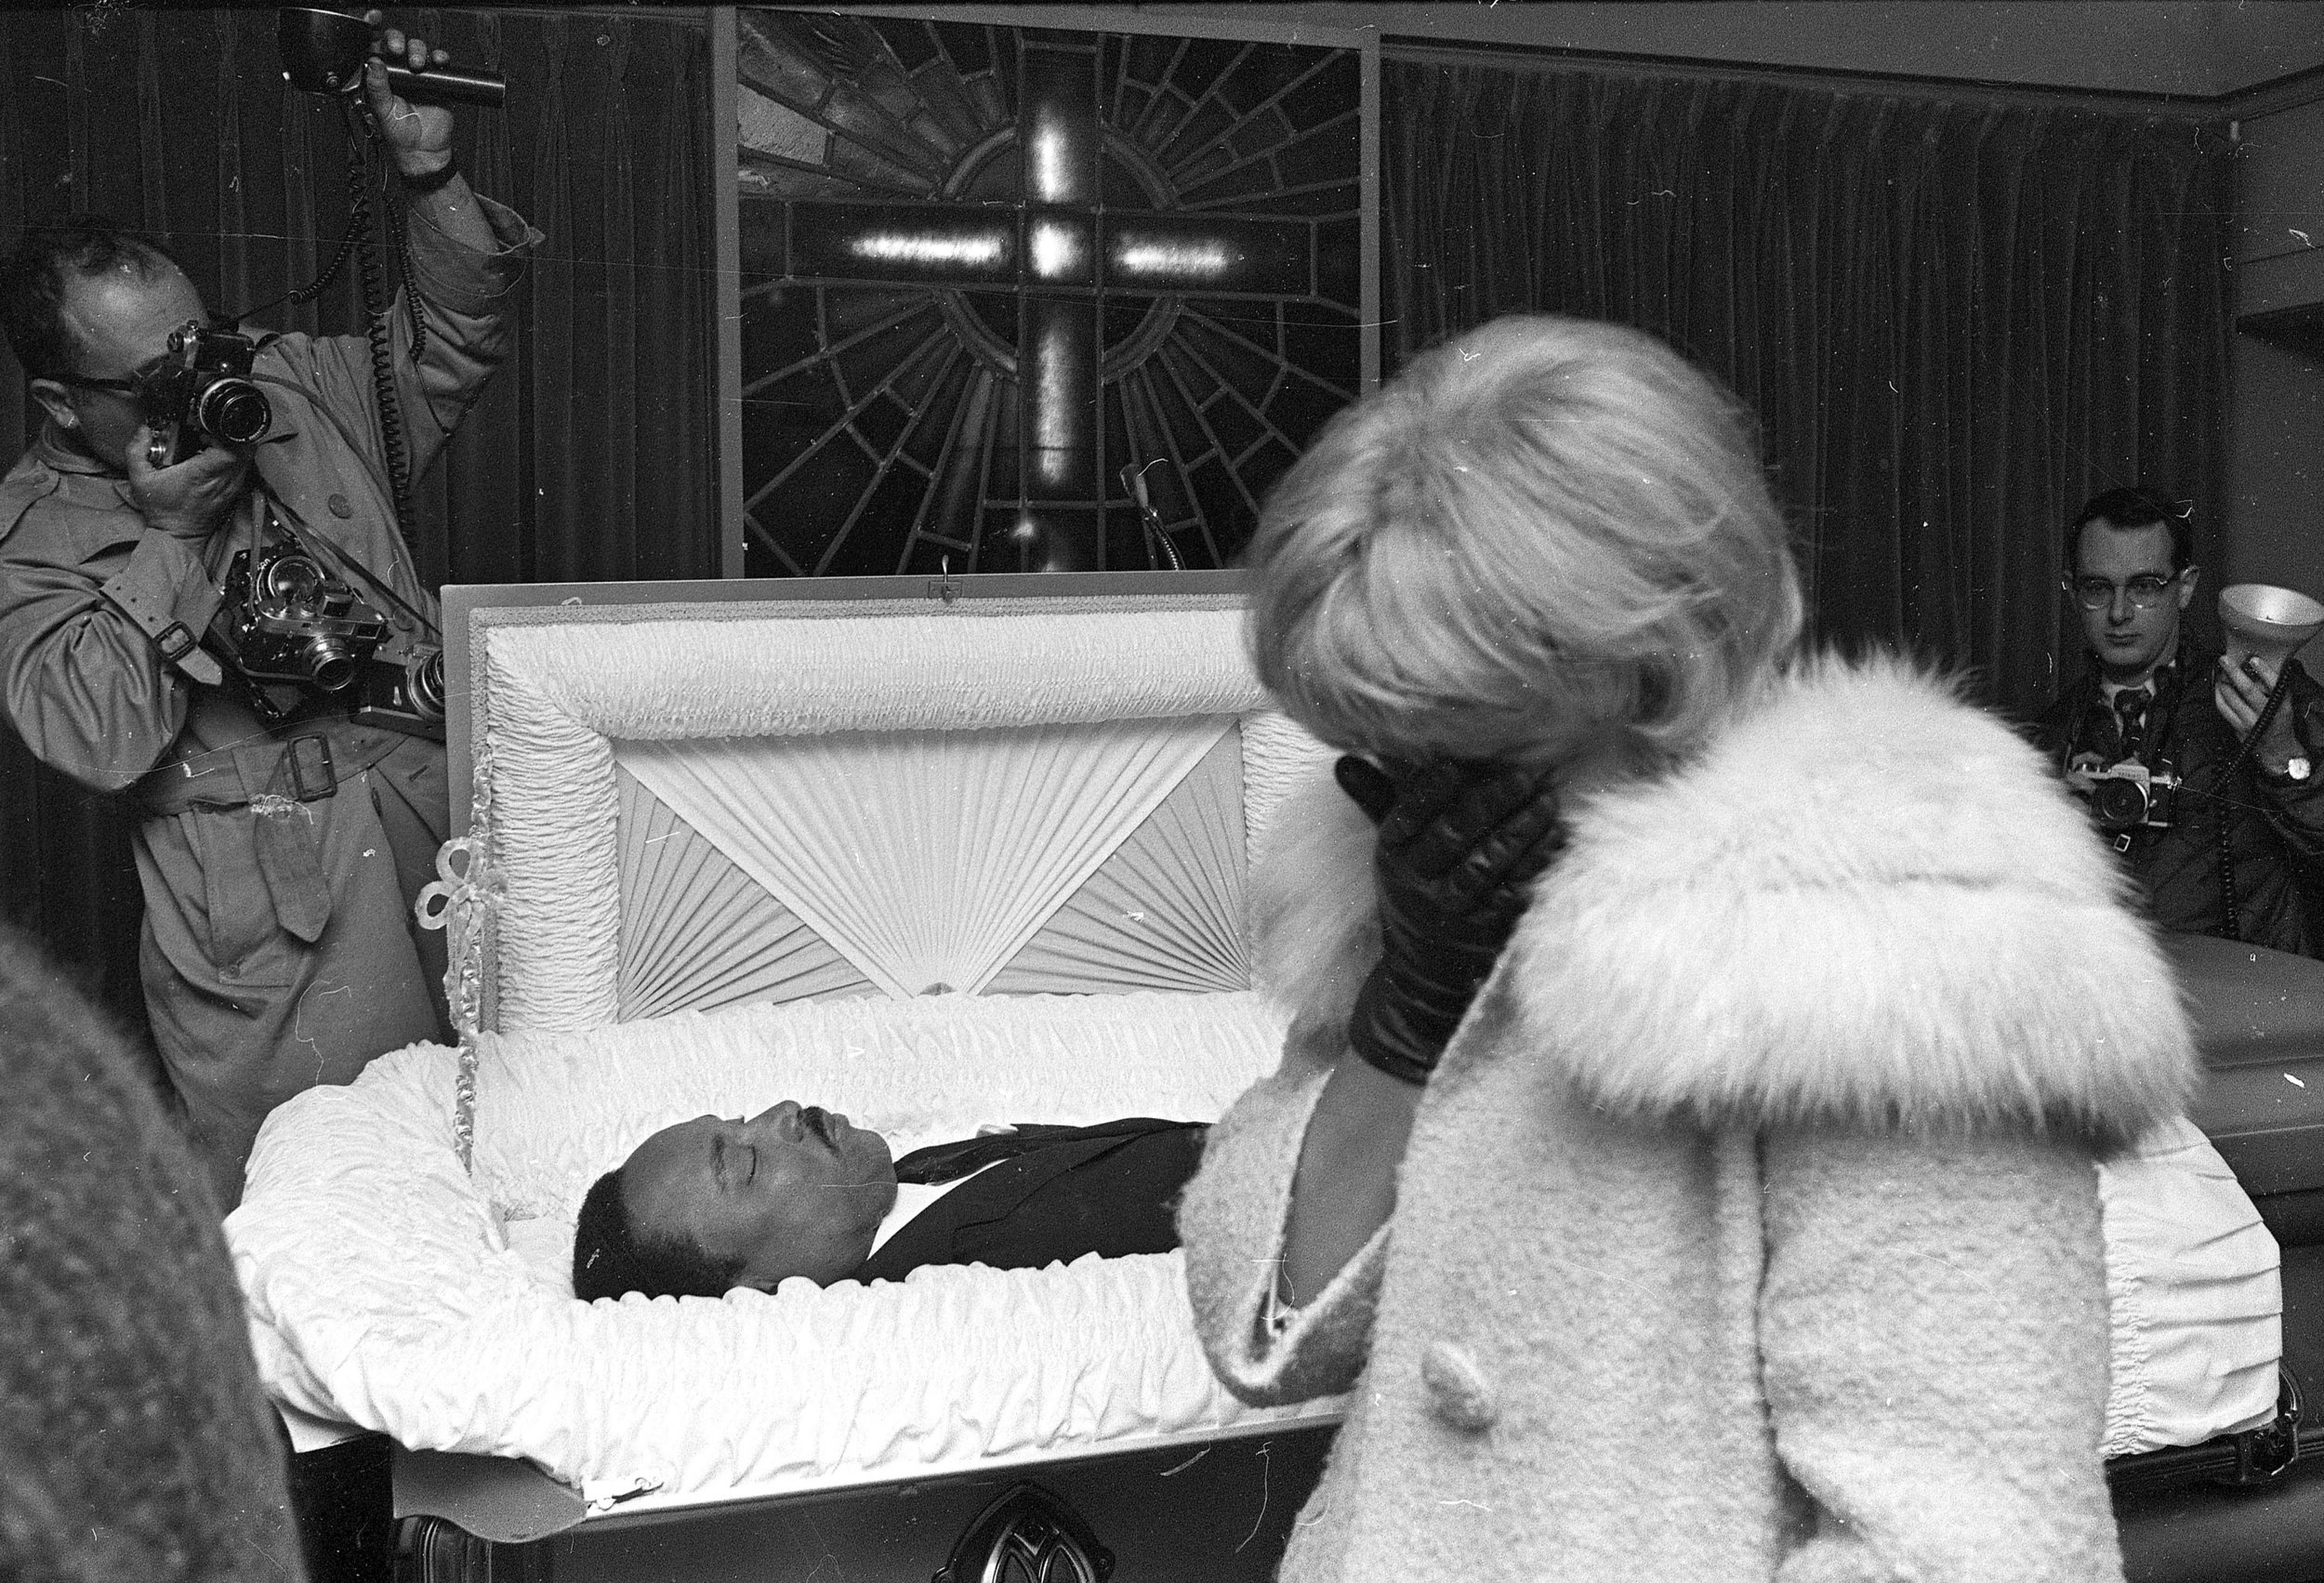 PAGE 114: DR. KING WAS ASSASSINATED ON APRIL 4, 1968. BEFORE THE SLAIN CIVIL RIGHTS LEADER'S BODY WAS RETURNED TO ATLANTA, A FUNERAL WAS HELD FOR MOURNERS IN MEMPHIS, TENNESSEE. AN UNIDENTIFIED WOMAN CONCEALS HER FACE AS SHE GRIEVES OVER THE LOSS OF THE CIVIL RIGHTS LEADER (PERMISSION OF THE ASSOCIATED PRESS).